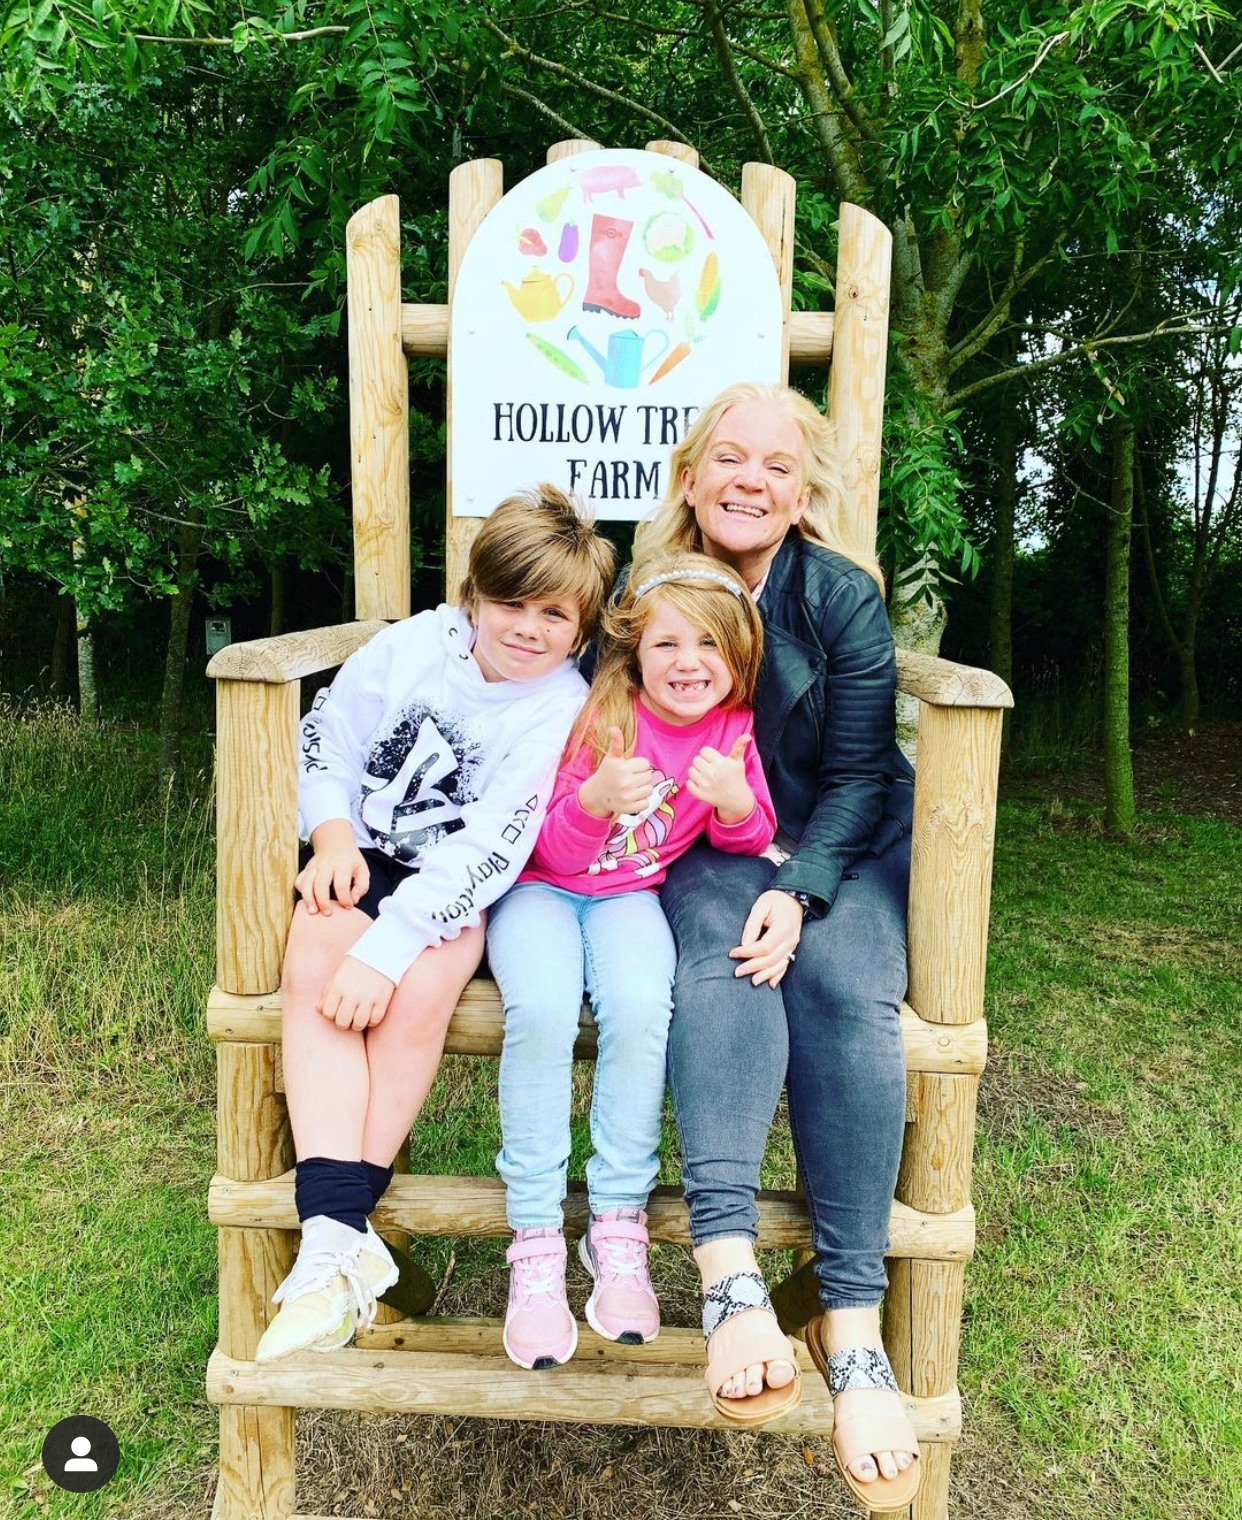 East of england family days out, A suffolk mum blog, Hollow Tree Farm